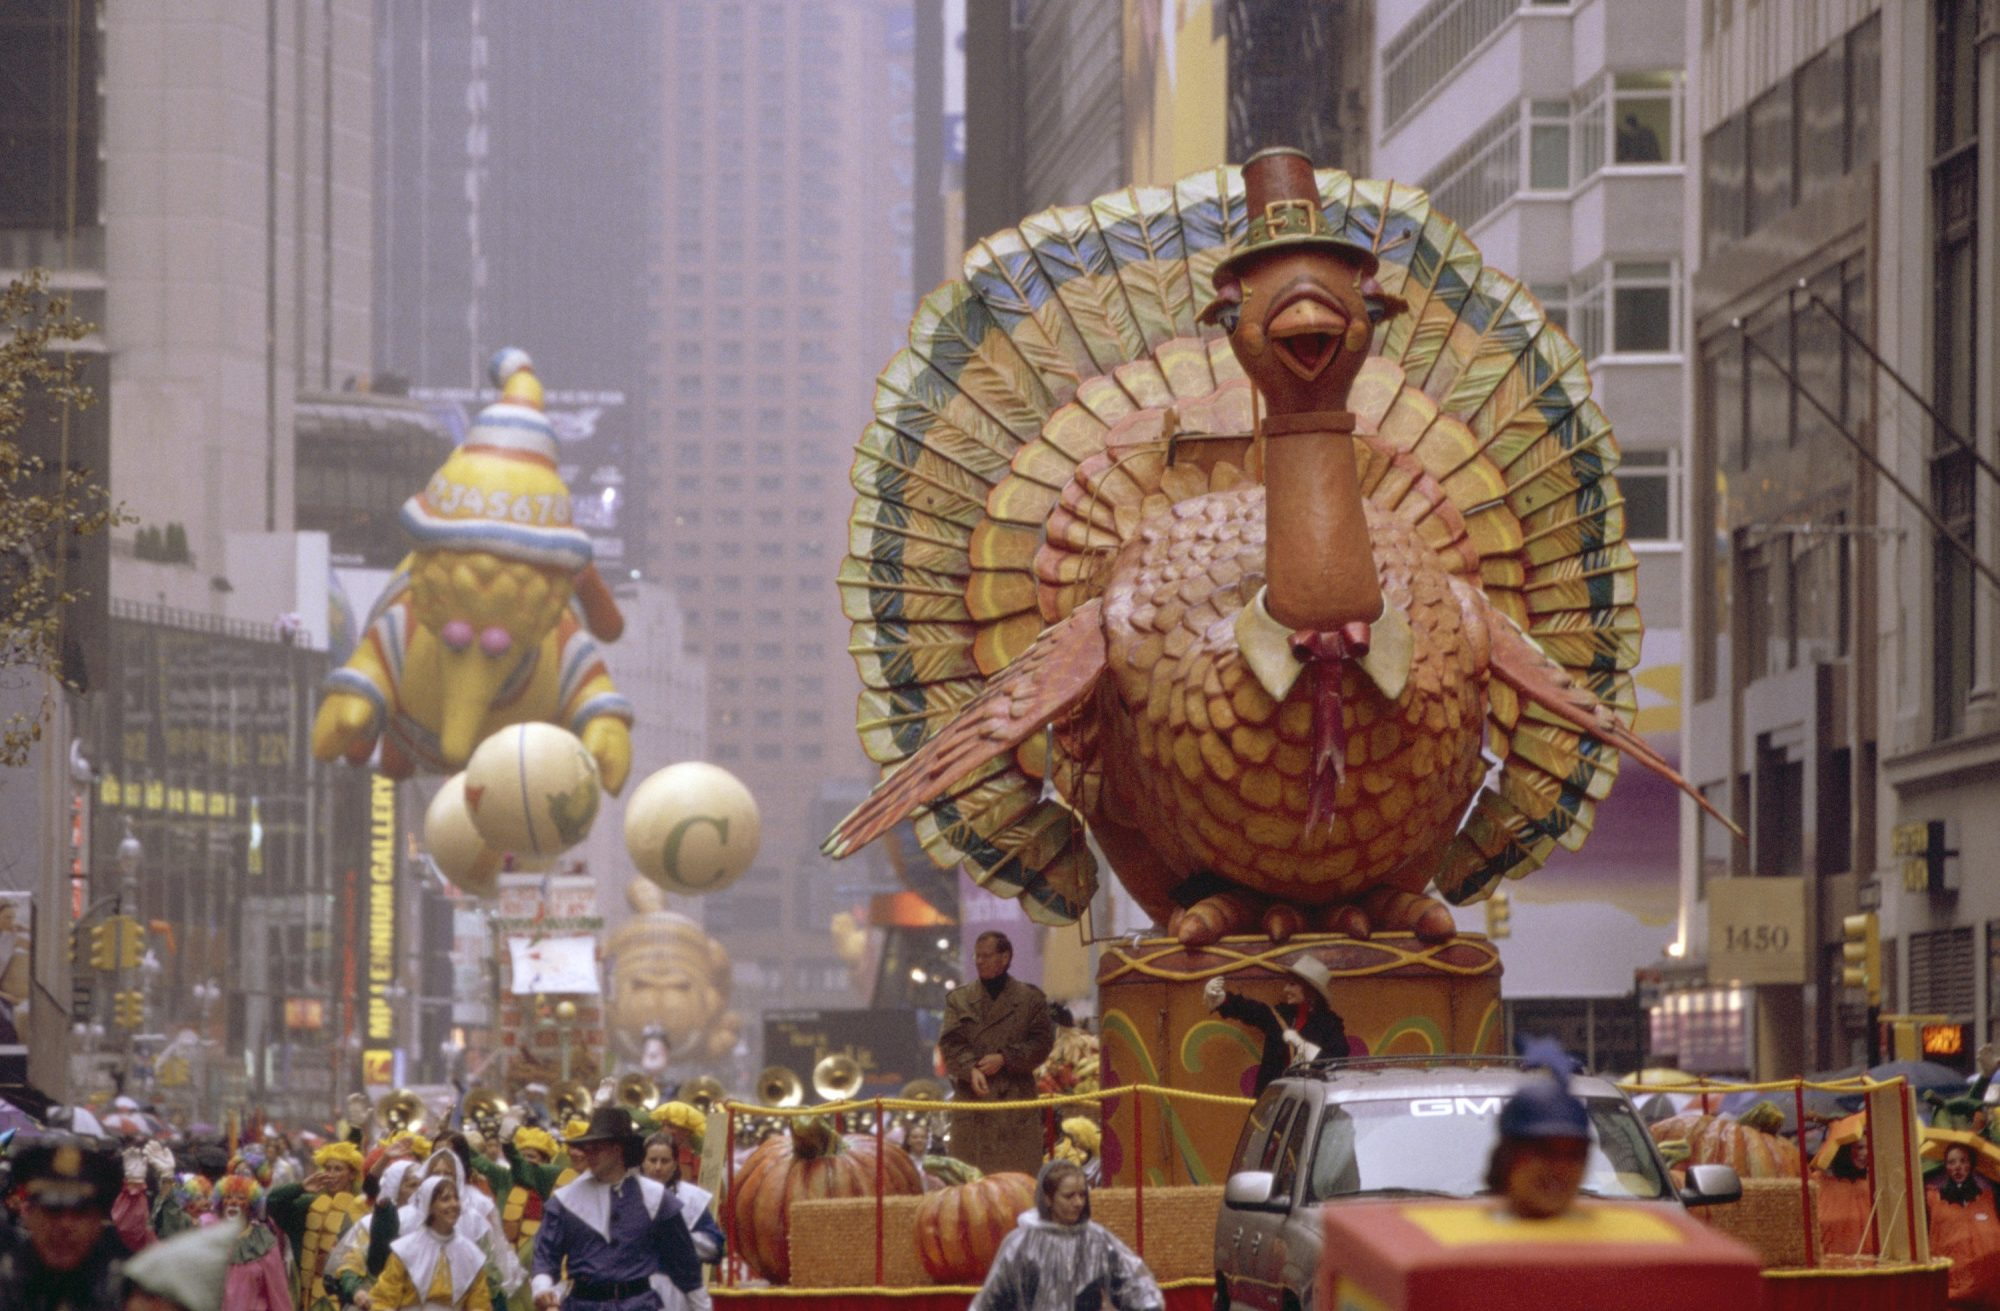 Macy's Thanksgiving Day Parade Turkey Float